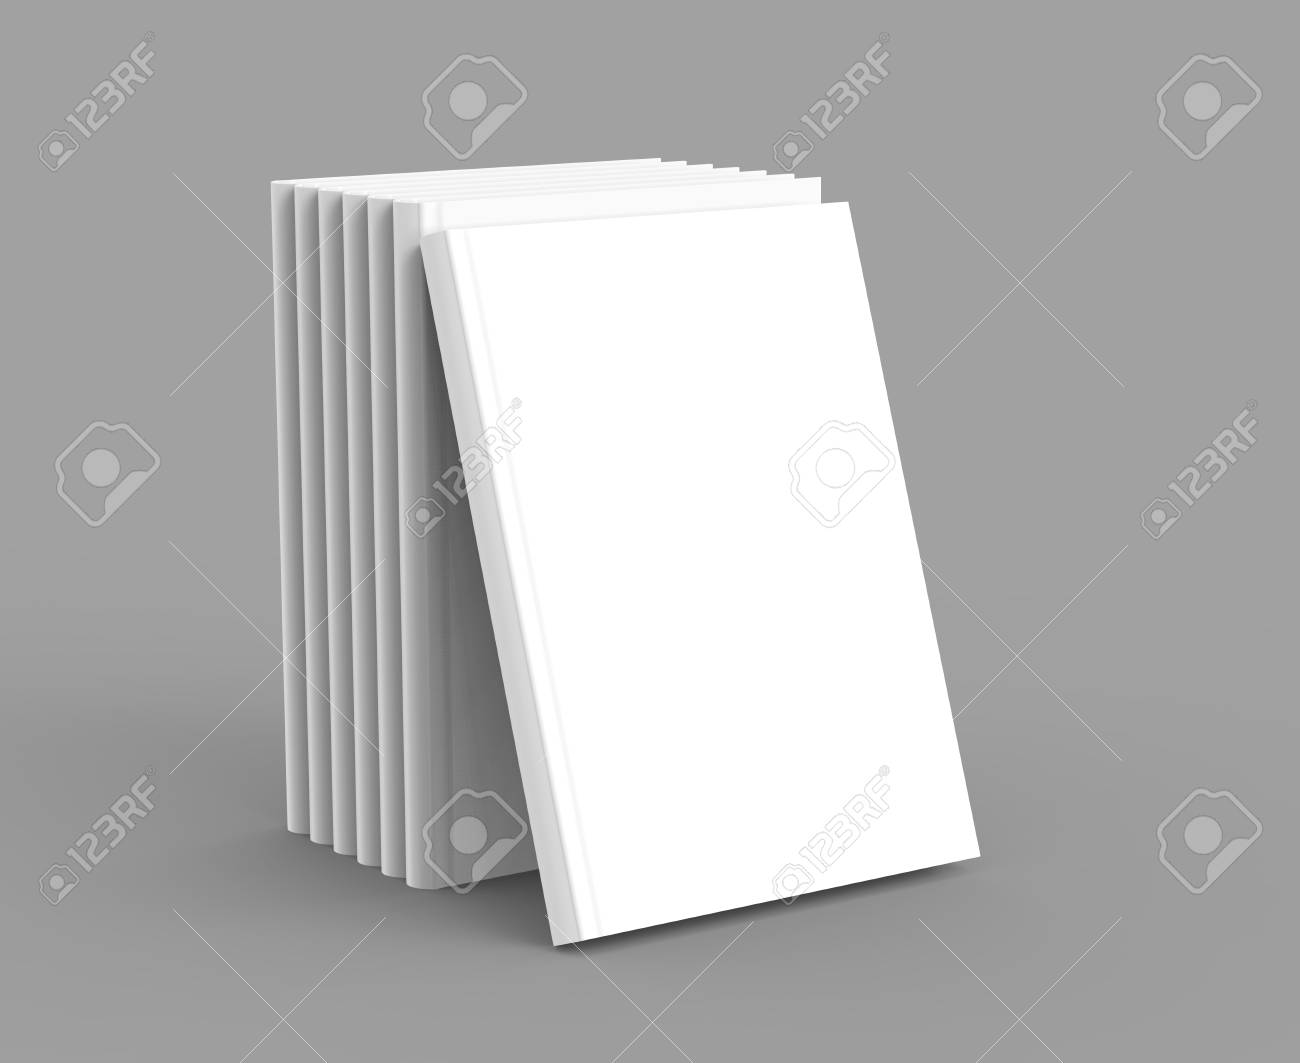 Hardcover Book Template, Blank Standing Books Mockup For Design ...